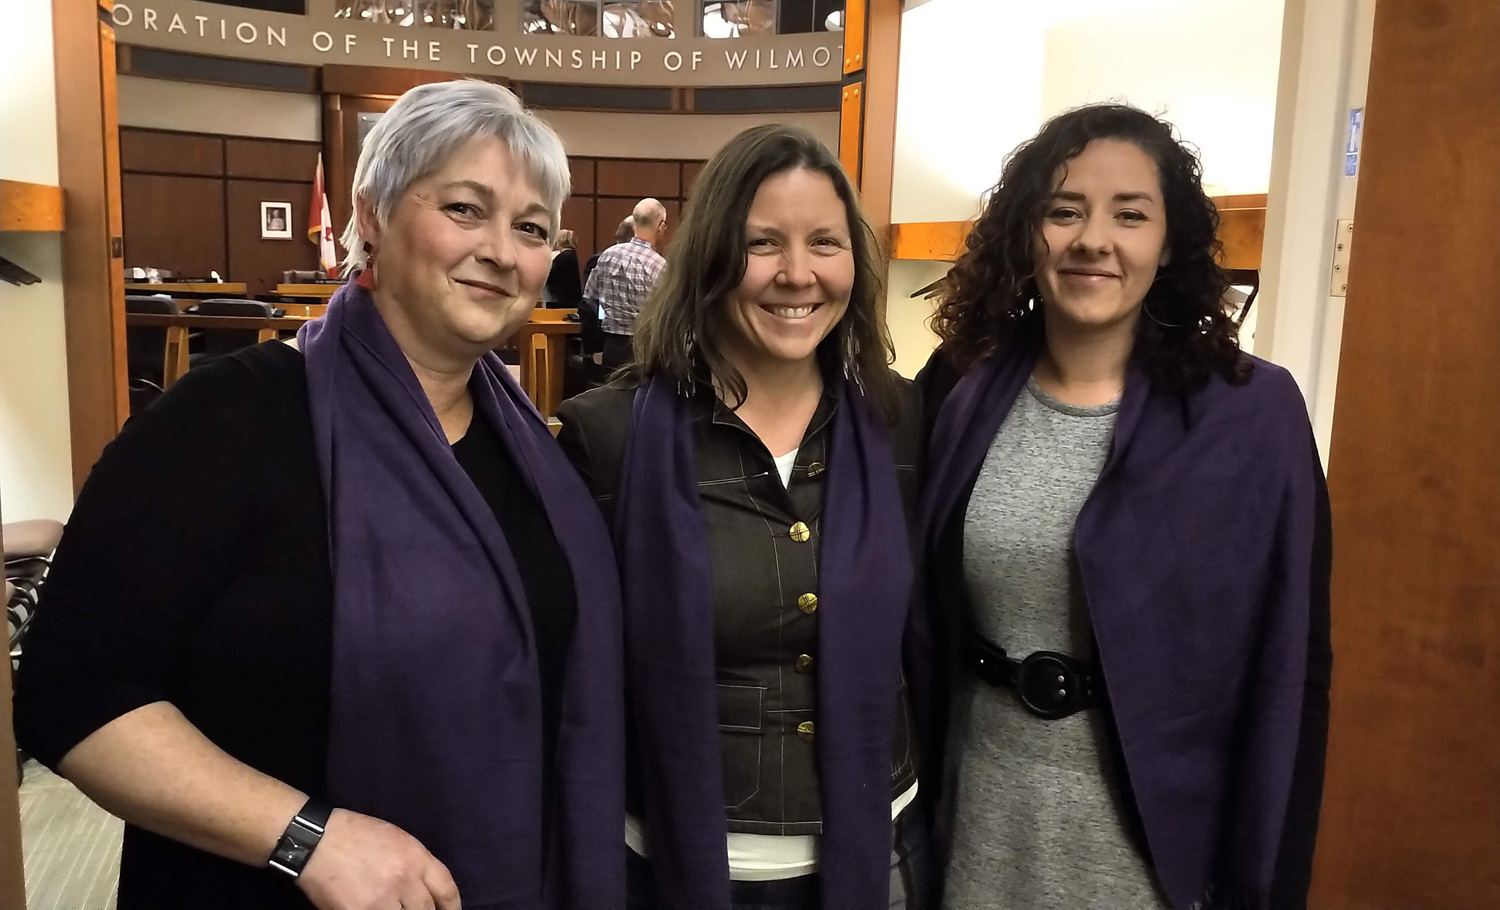 Wilmot councillors Cheryl Gordijk, Jenn Pfenning and Angie Hallman wore Wrapped In Courage purple scarves in support of the Women's Crisis Services of Waterloo Region. Photo by Ekk Pfenning